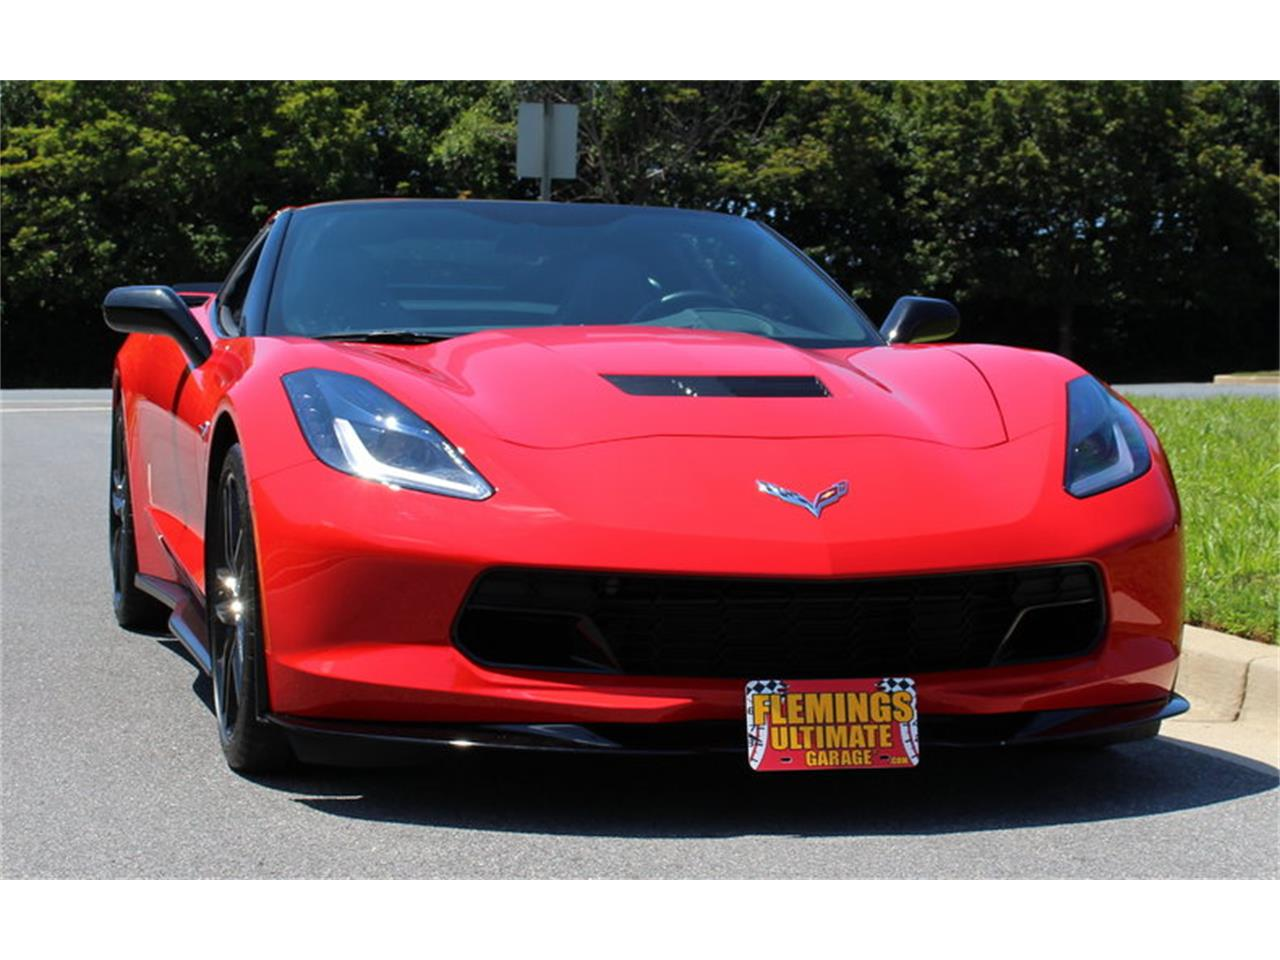 Large Picture of 2014 Chevrolet Corvette located in Maryland - $49,990.00 - MGRV